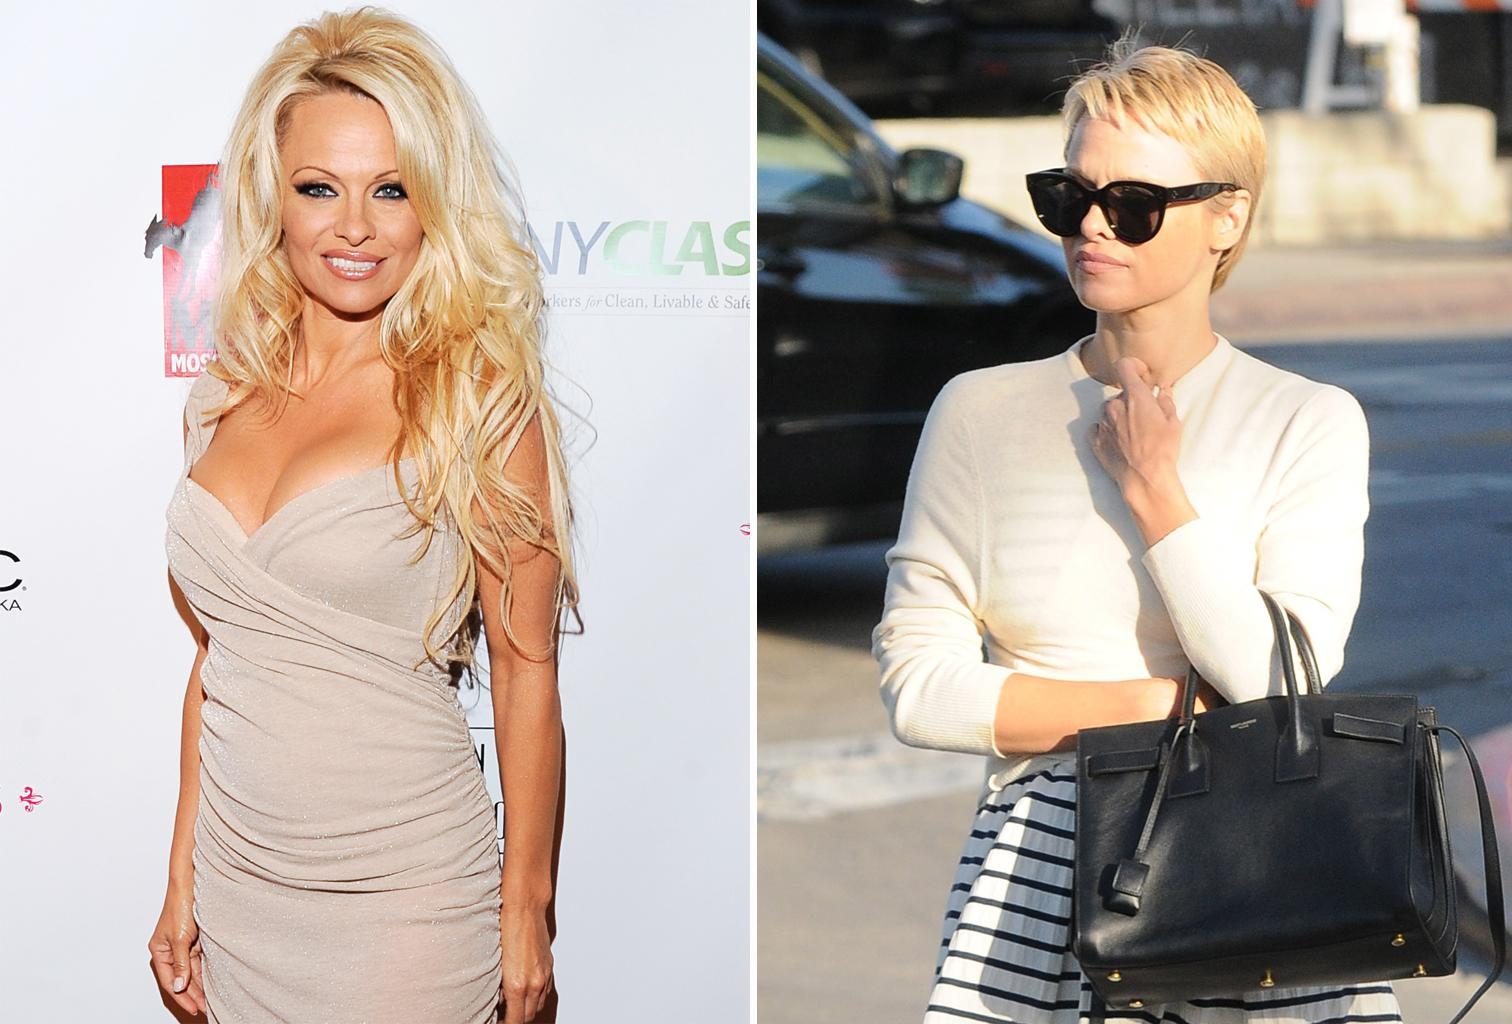 Pamela Anderson Looks Completely Different With A Pixie Cut